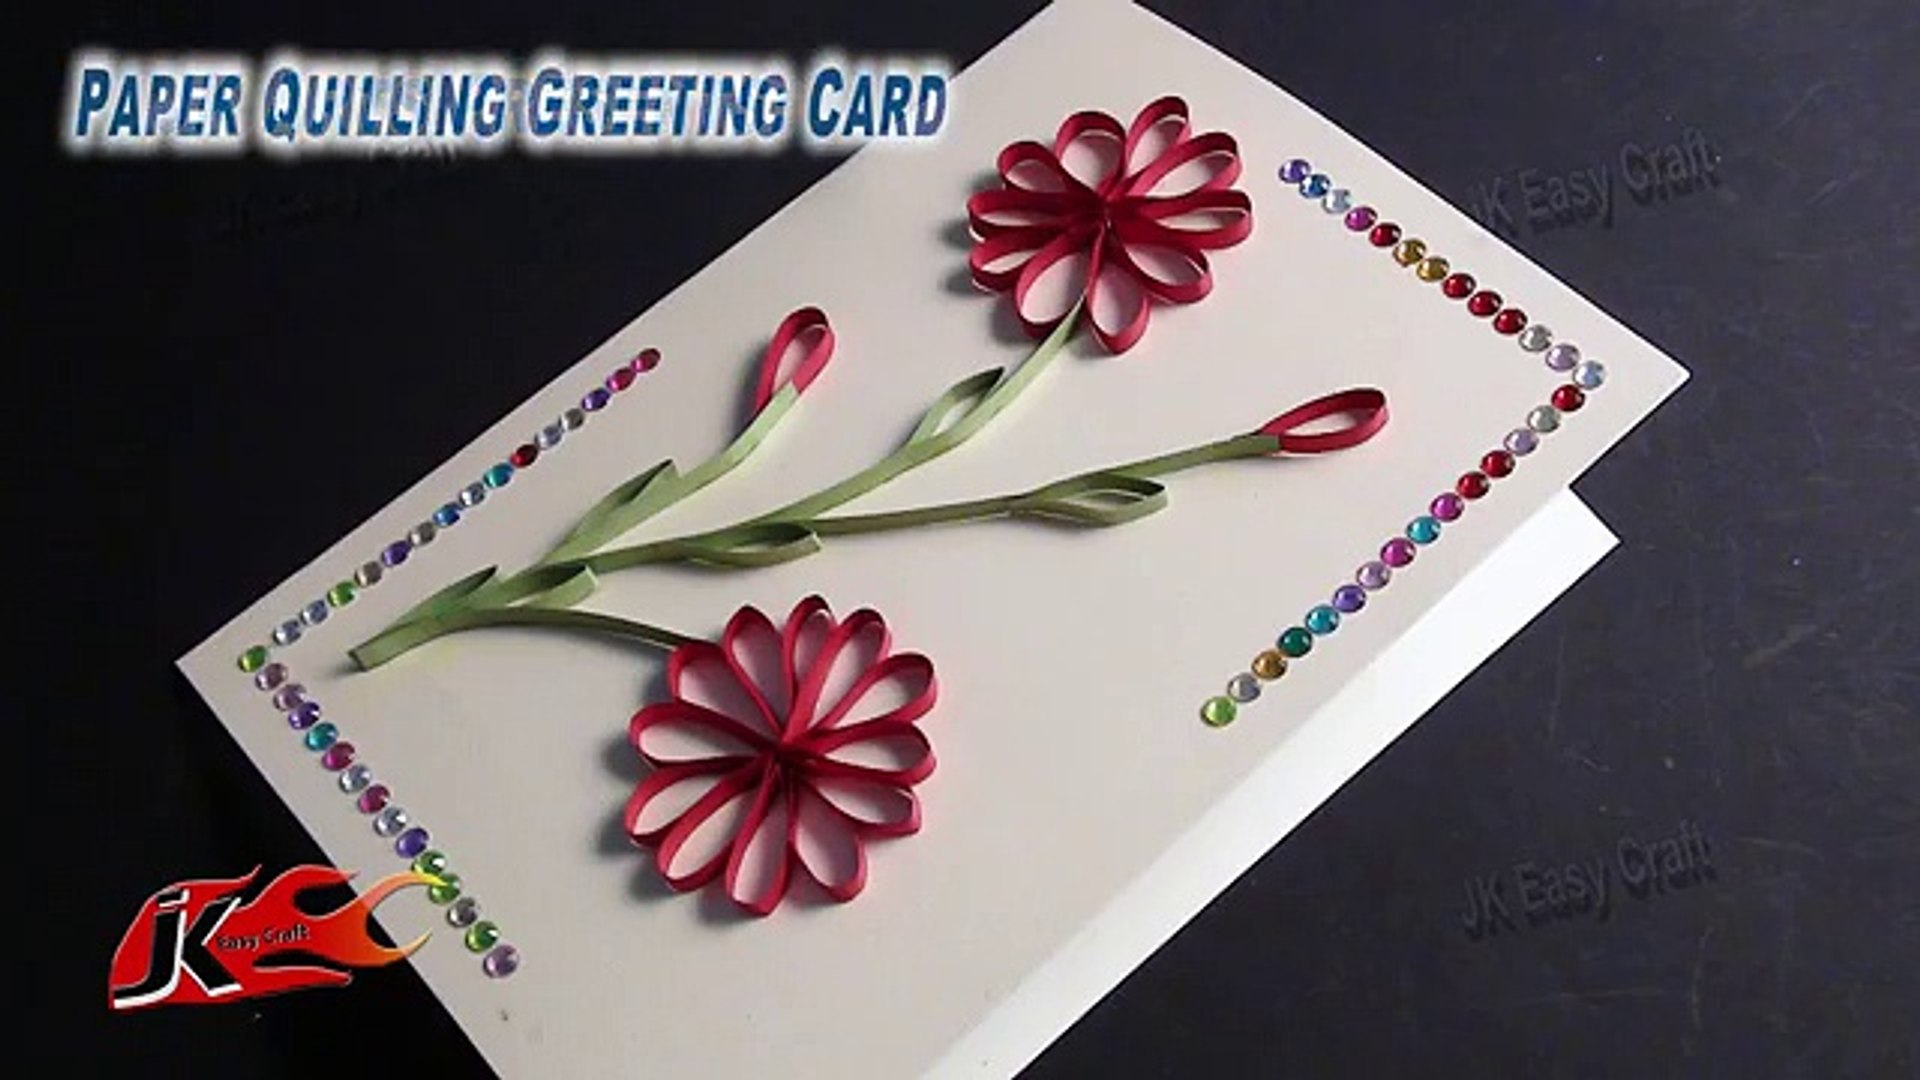 Diy Easy Paper Quilling Greeting Card Without Tool How To Make Jk Craft 050